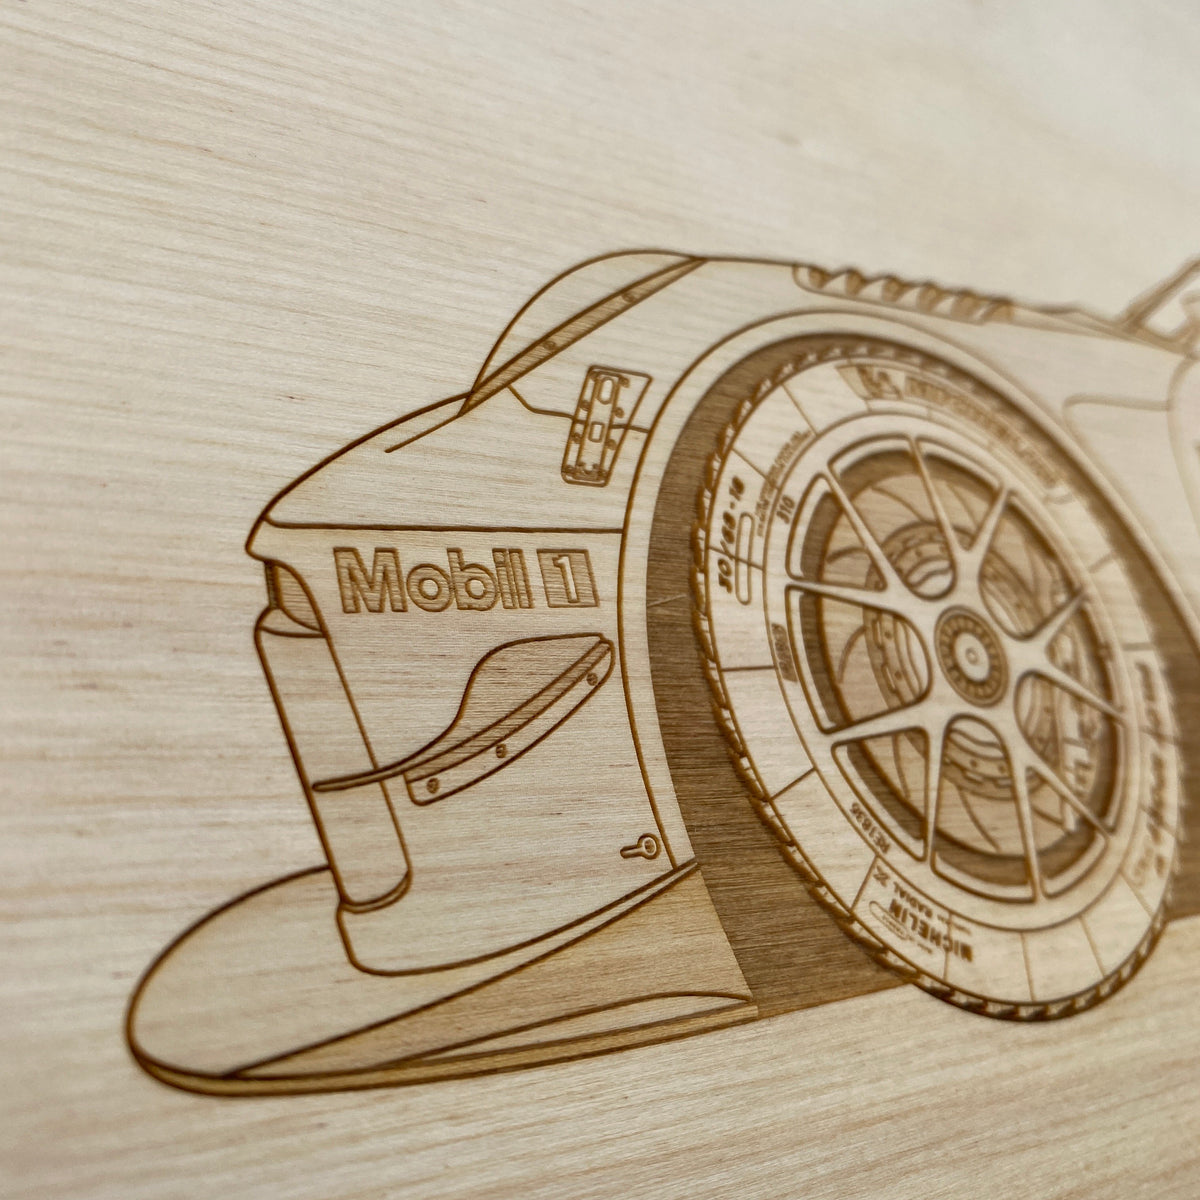 Porsche 911 GT3R Livery Framed Wood Engraved Artwork